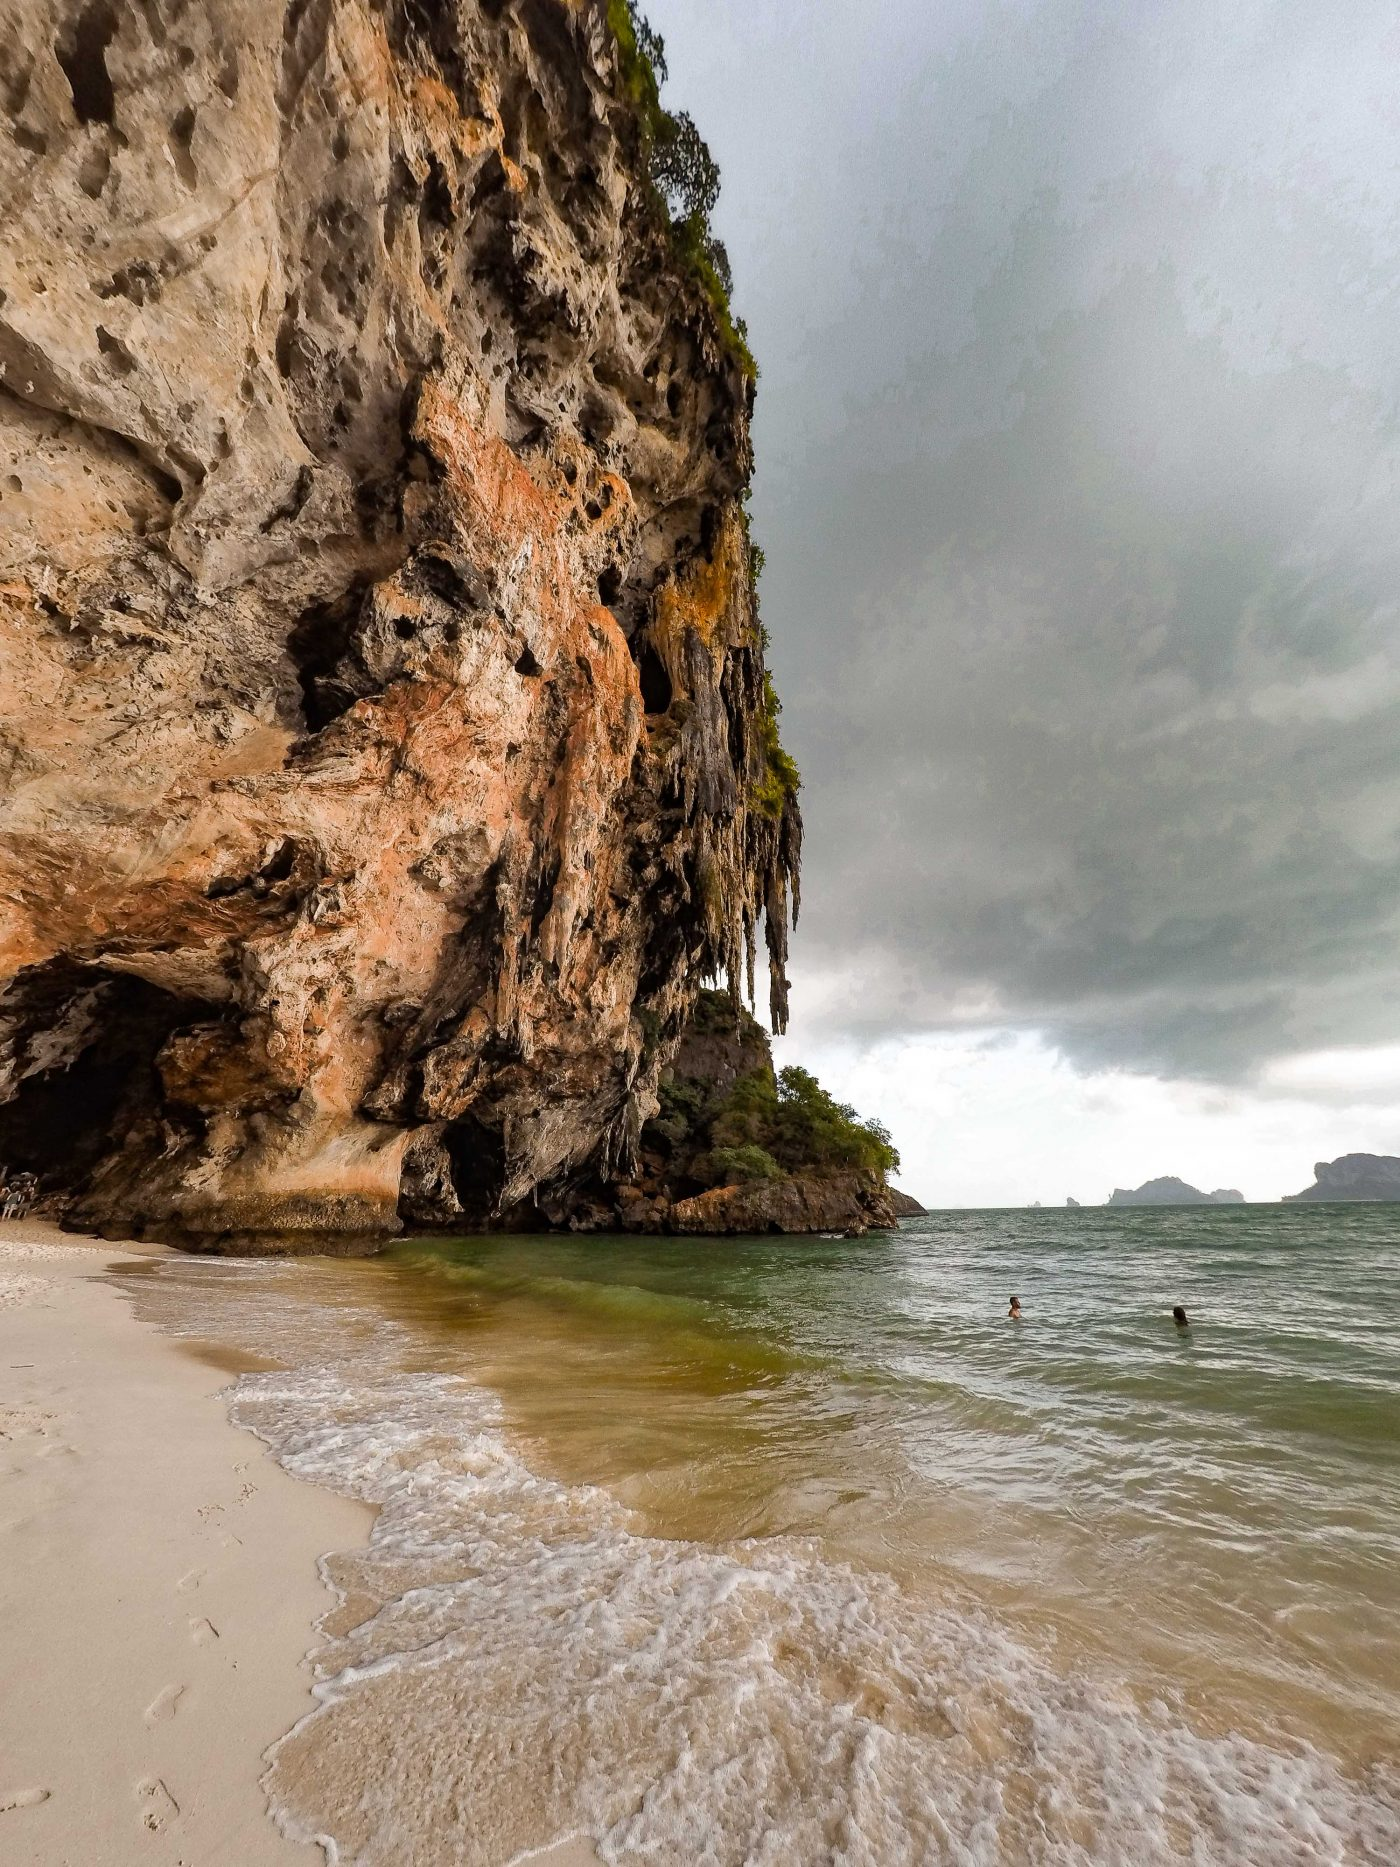 ao nang, railay beach viewpoint, ao nang hiking, ao nang backpacking, railay beach